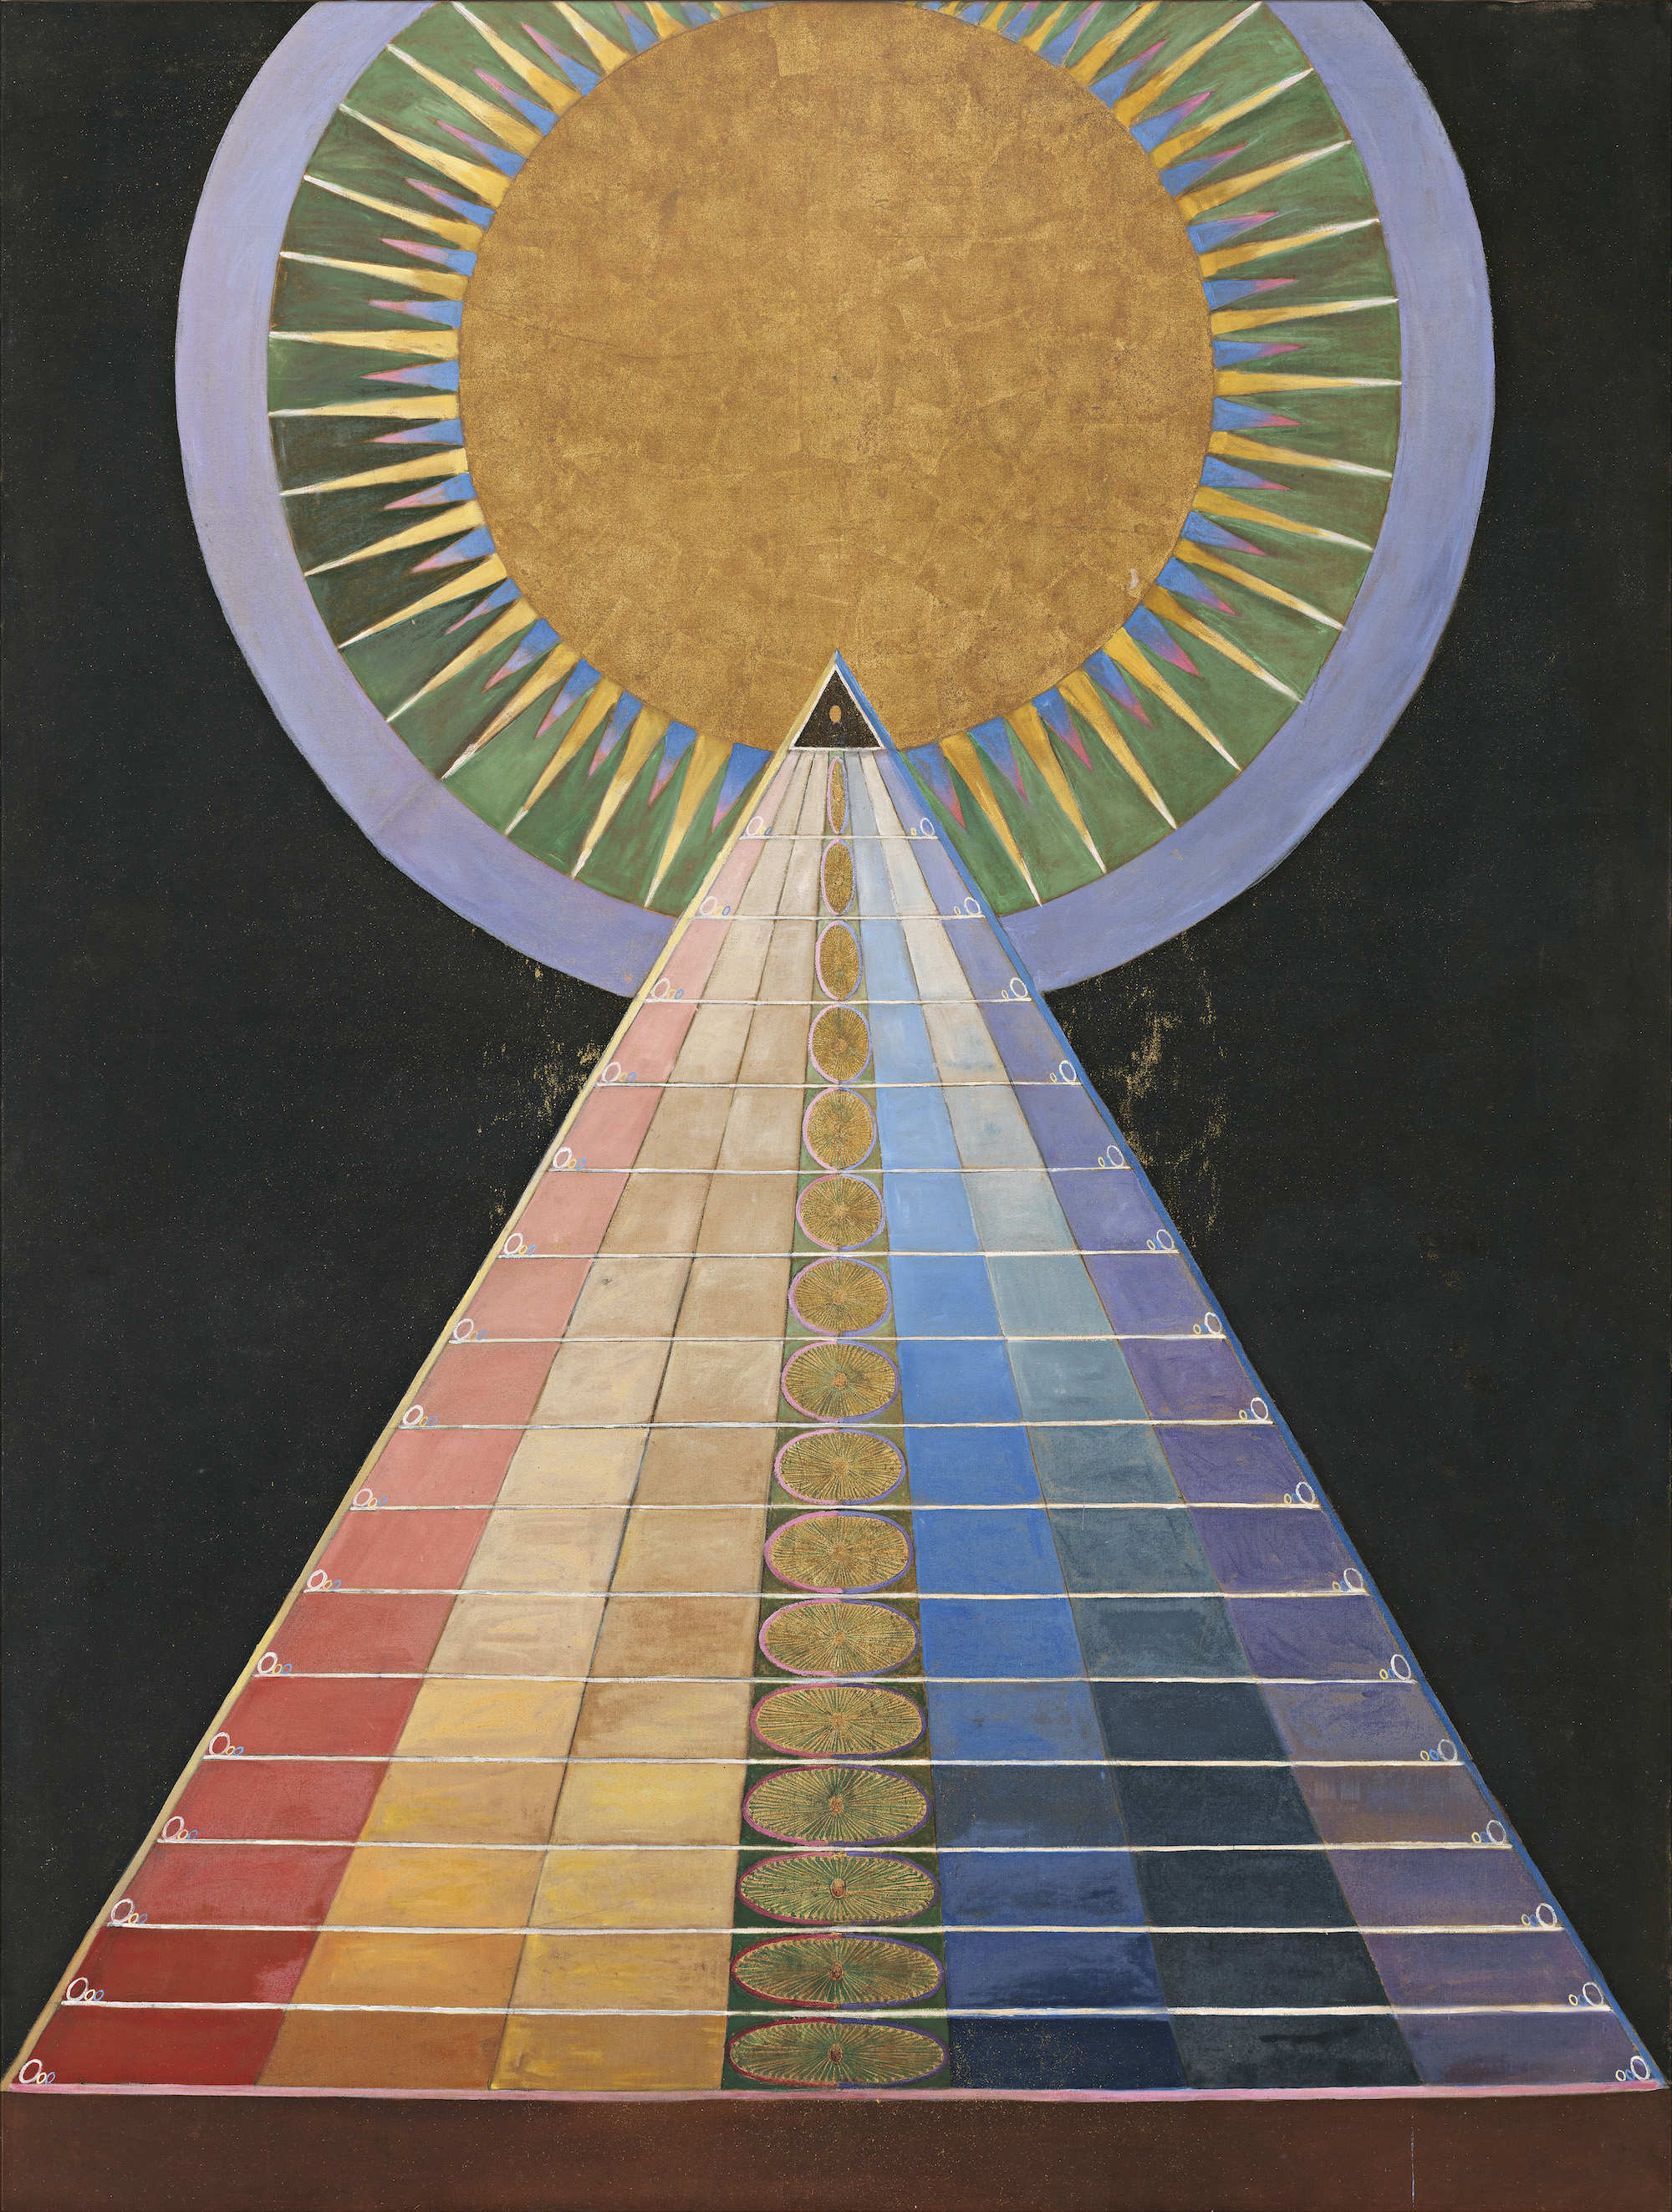 Hilma af Klint Group X, No. 1, Altarpiece (Grupp X, nr 1, Altarbild), 1915 from Altarpieces (Altarbilder). Courtesy The Hilma af Klint Foundation, Stockholm